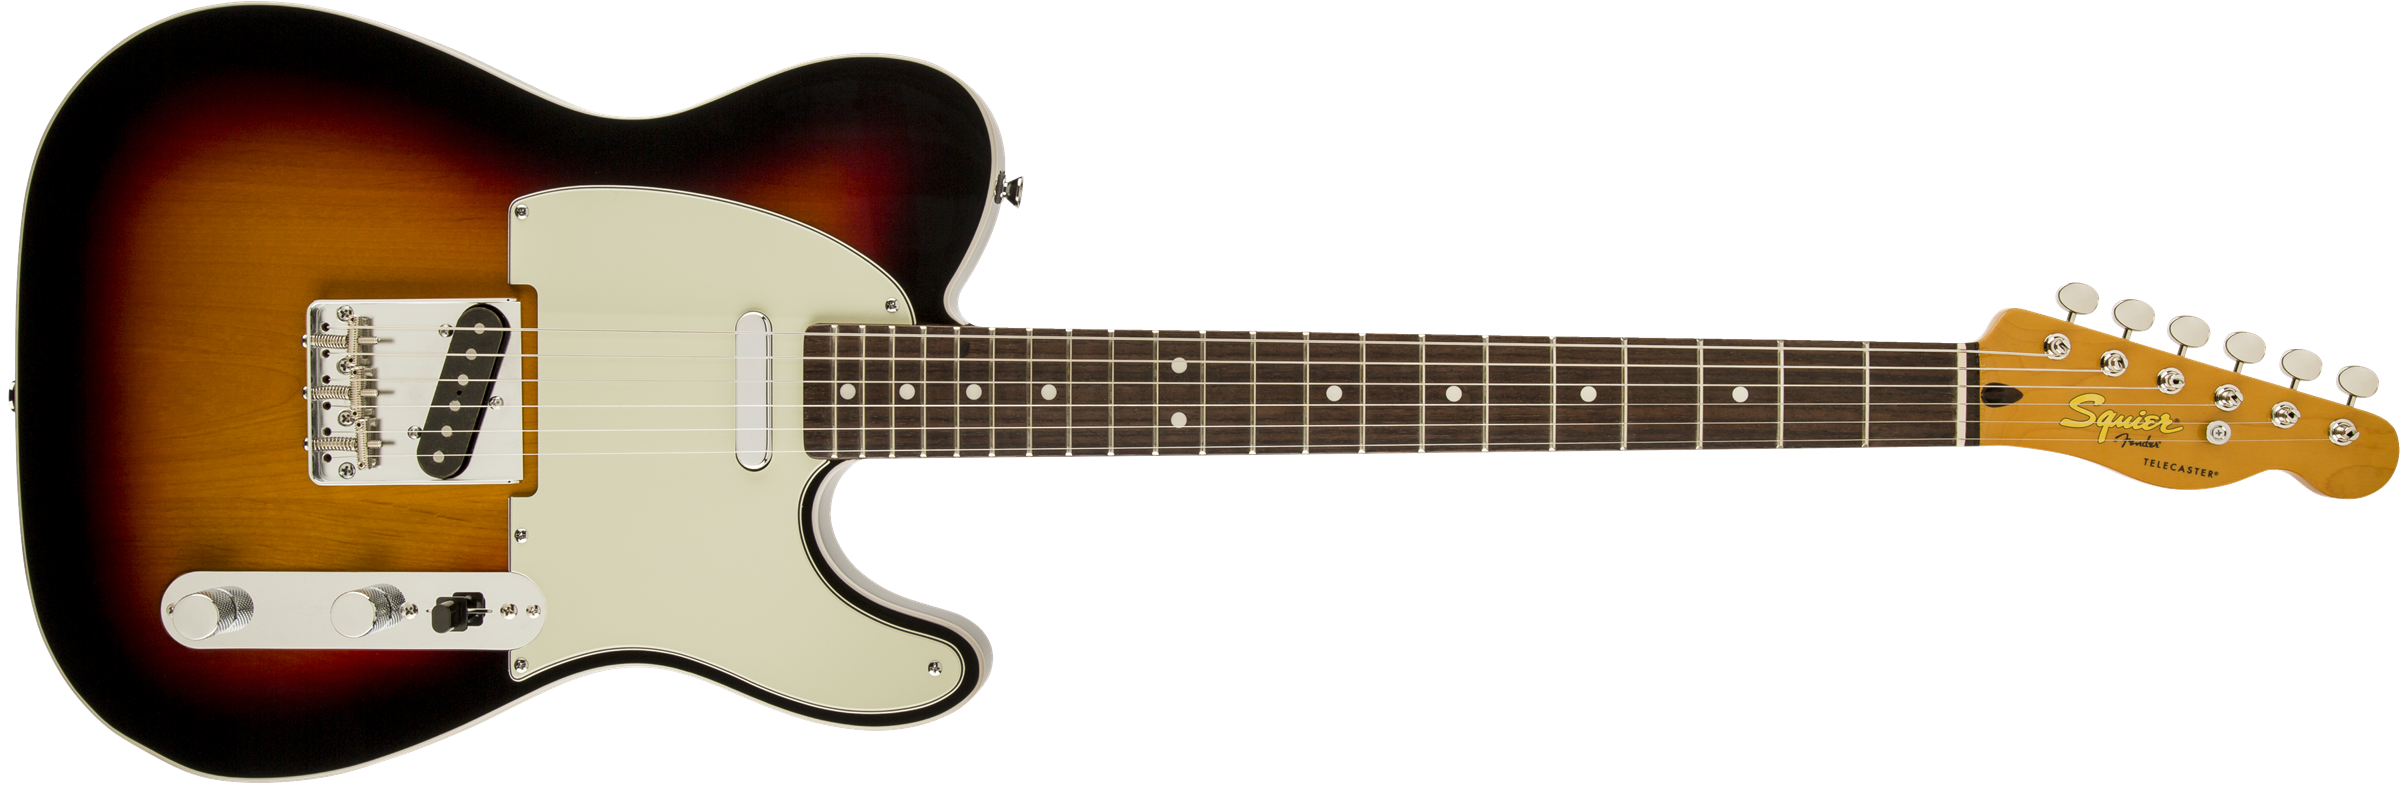 This is an image of the Squier Classic Vibe Custom Three Color Sunburst